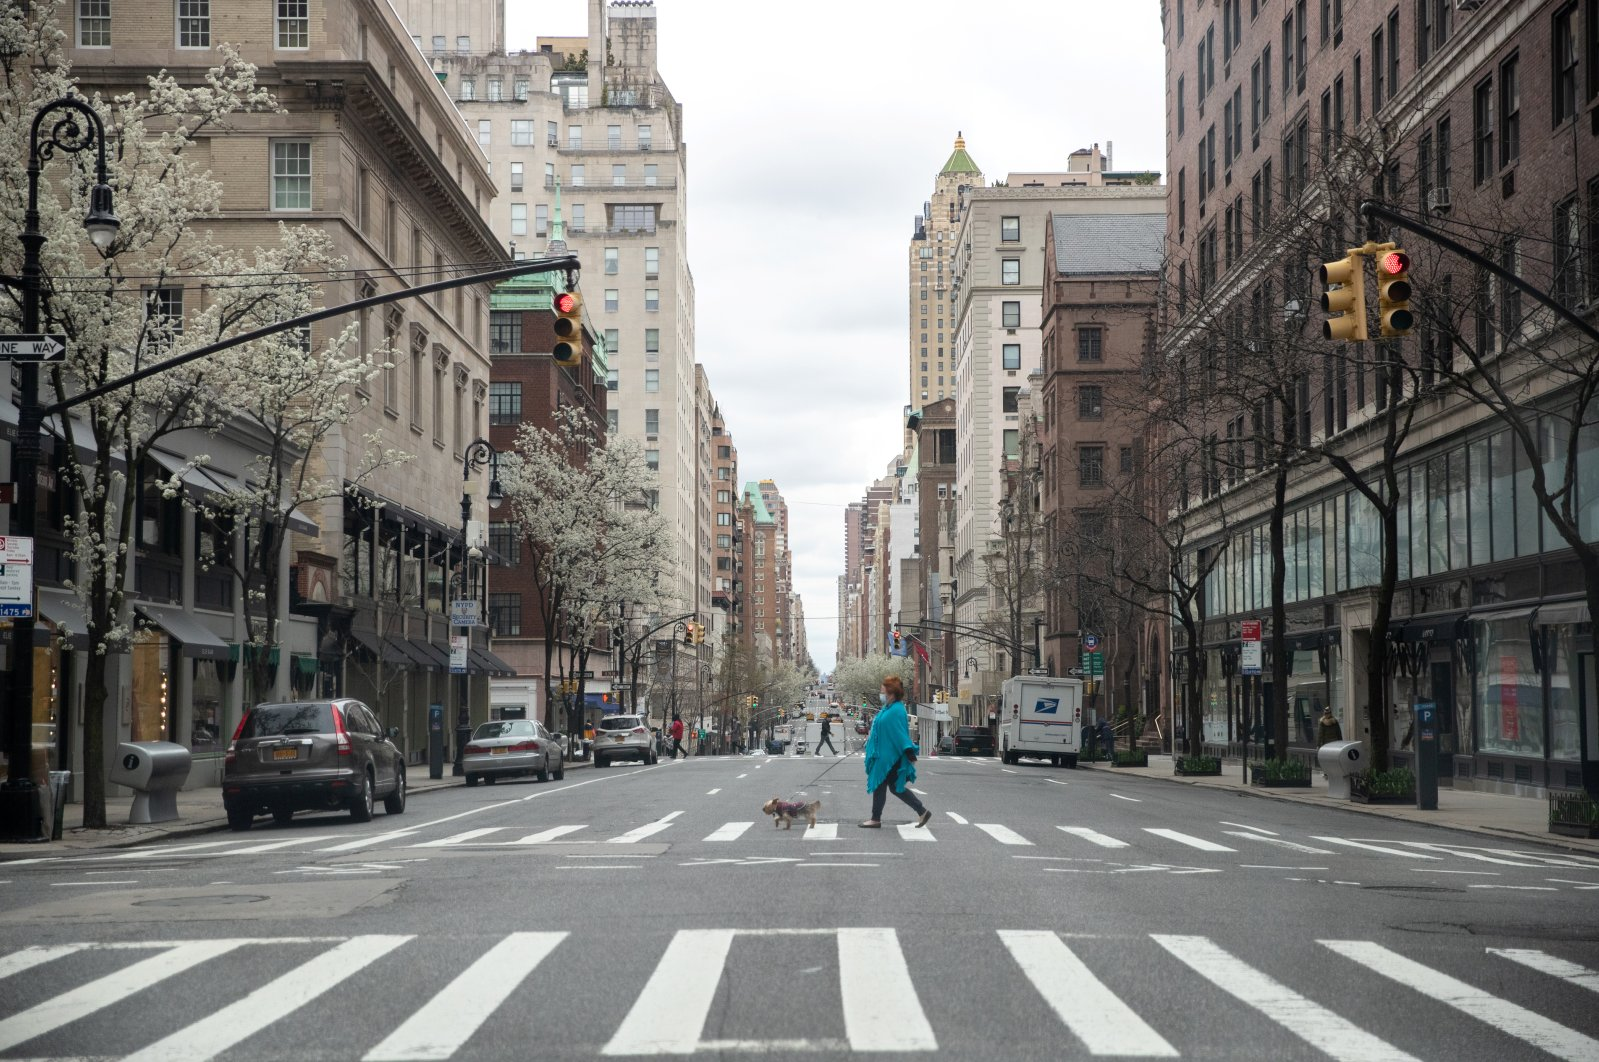 A nearly empty Madison Avenue is seen during the outbreak of COVID-19 in New York City, U.S., Tuesday, March 31, 2020. (Reuters Photo)